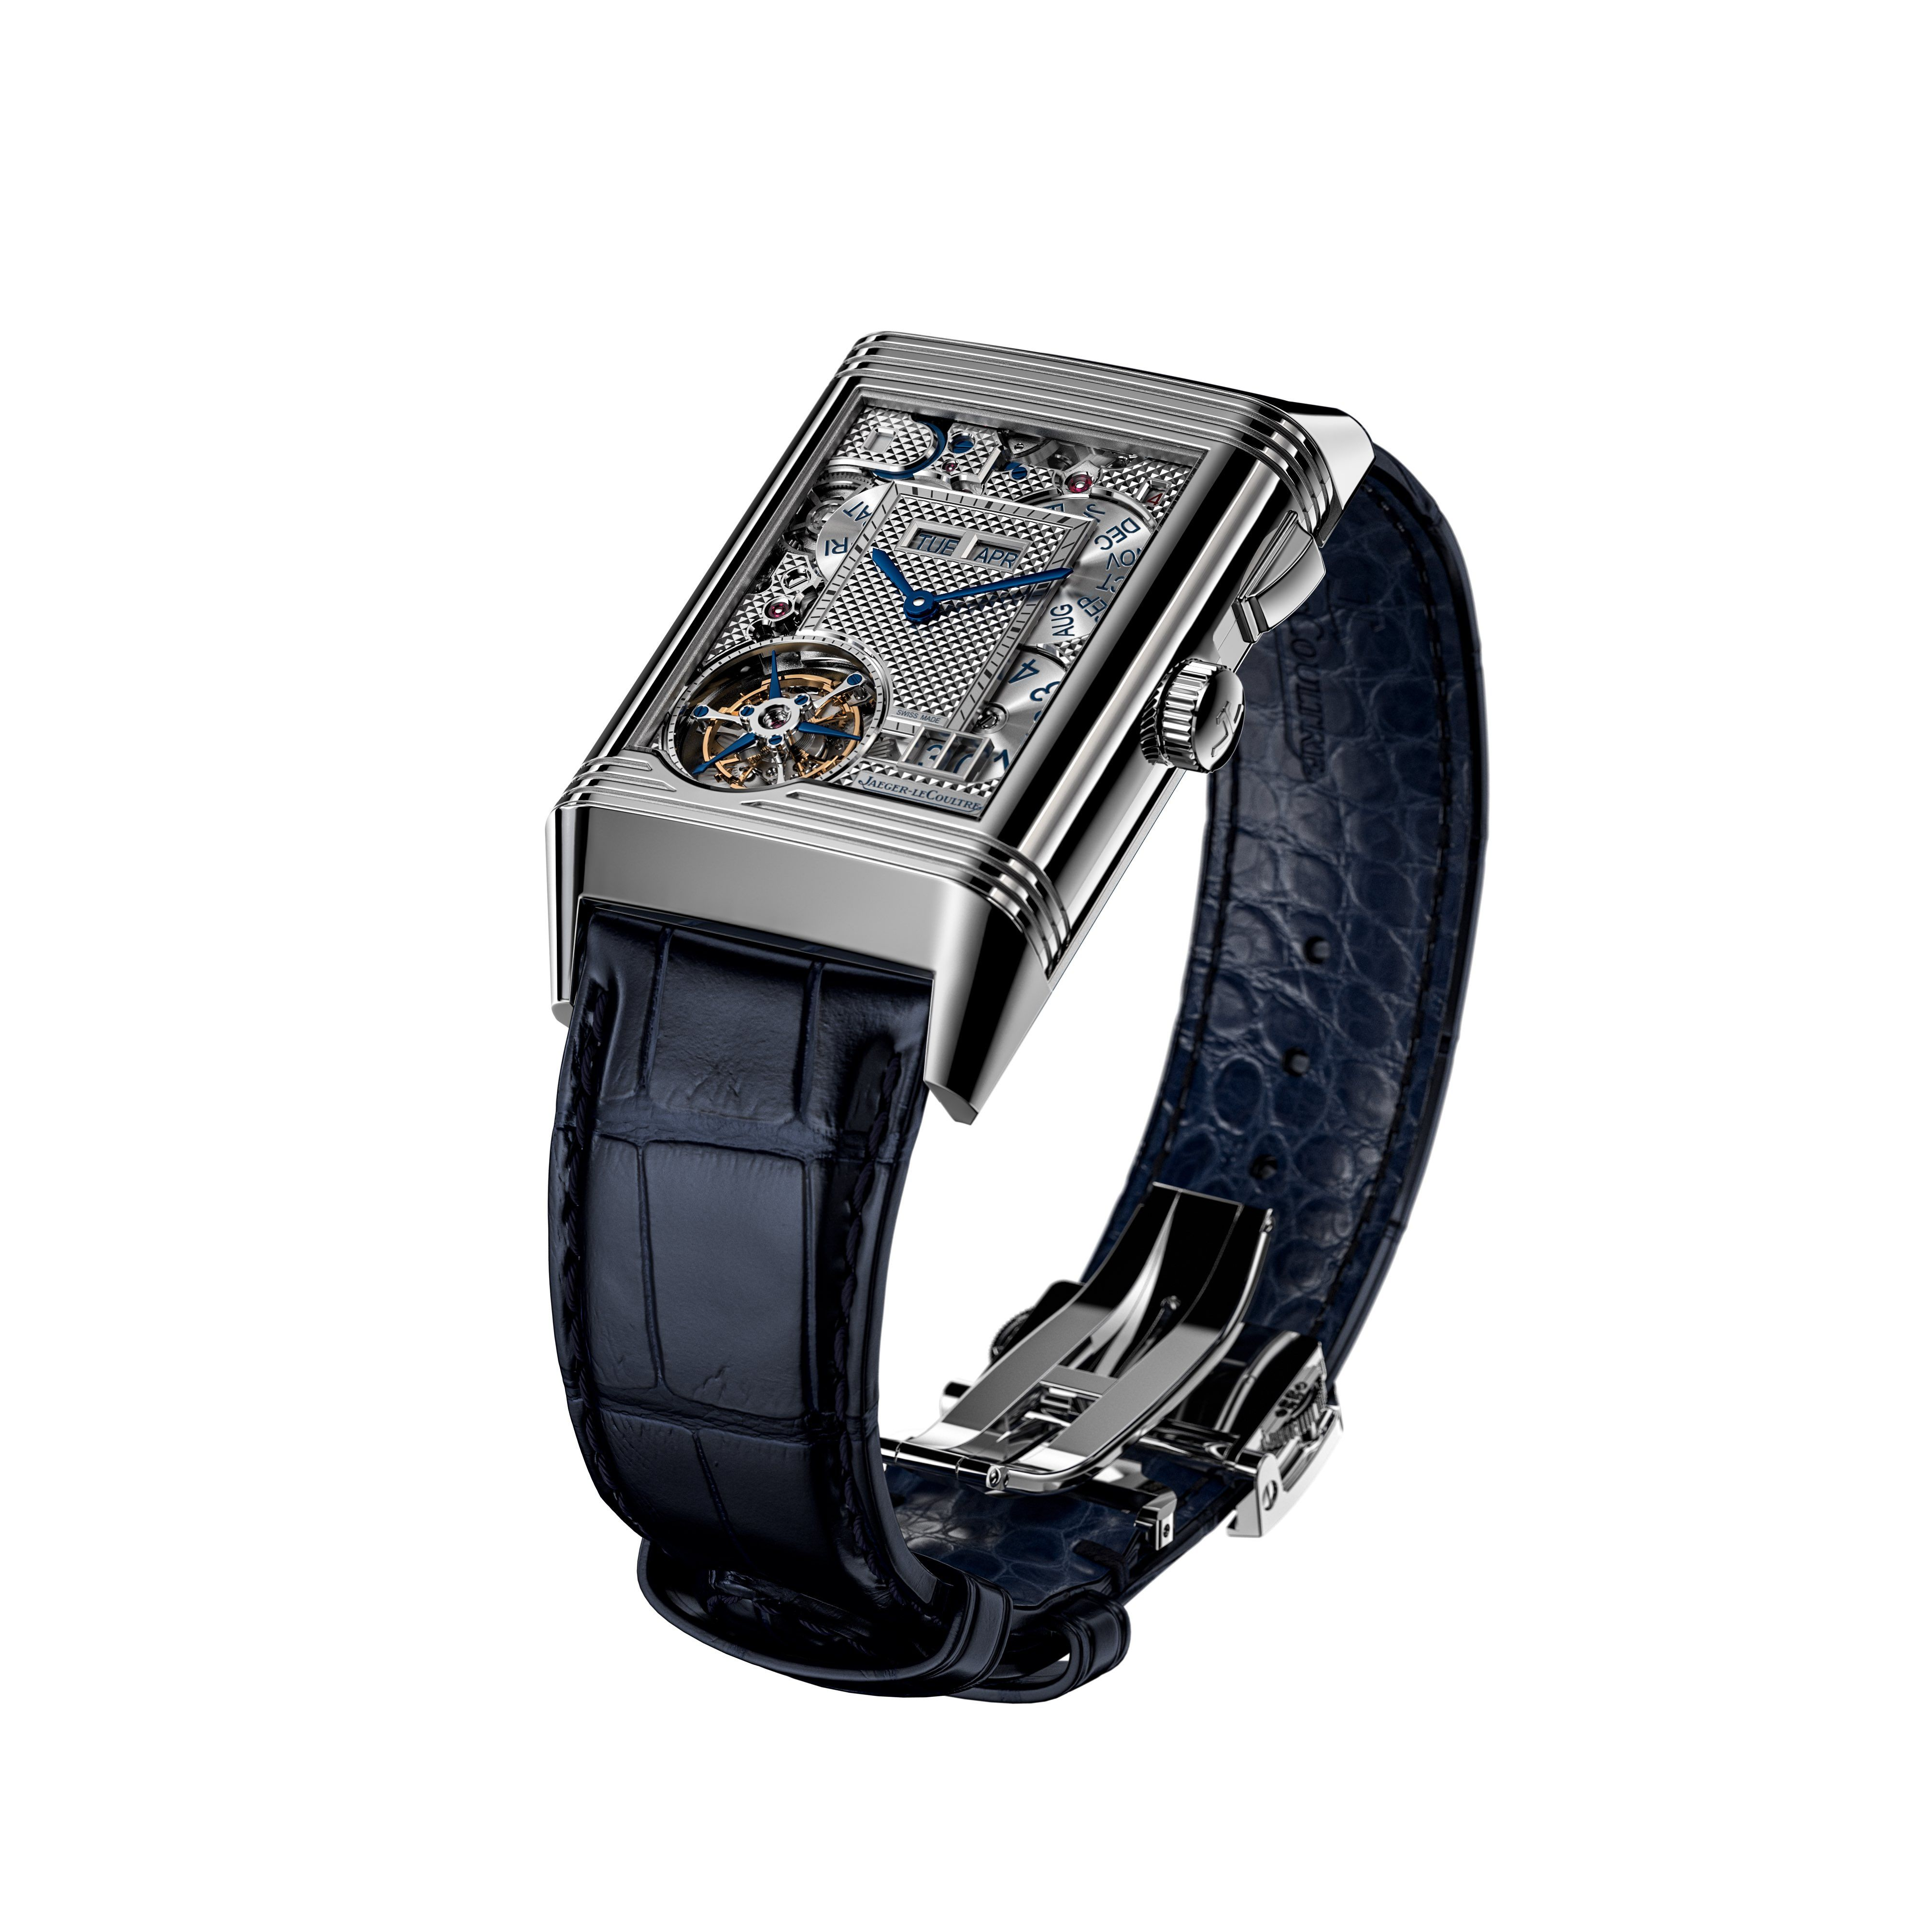 Jaeger-LeCoultre Has Made a Watch With Four Faces